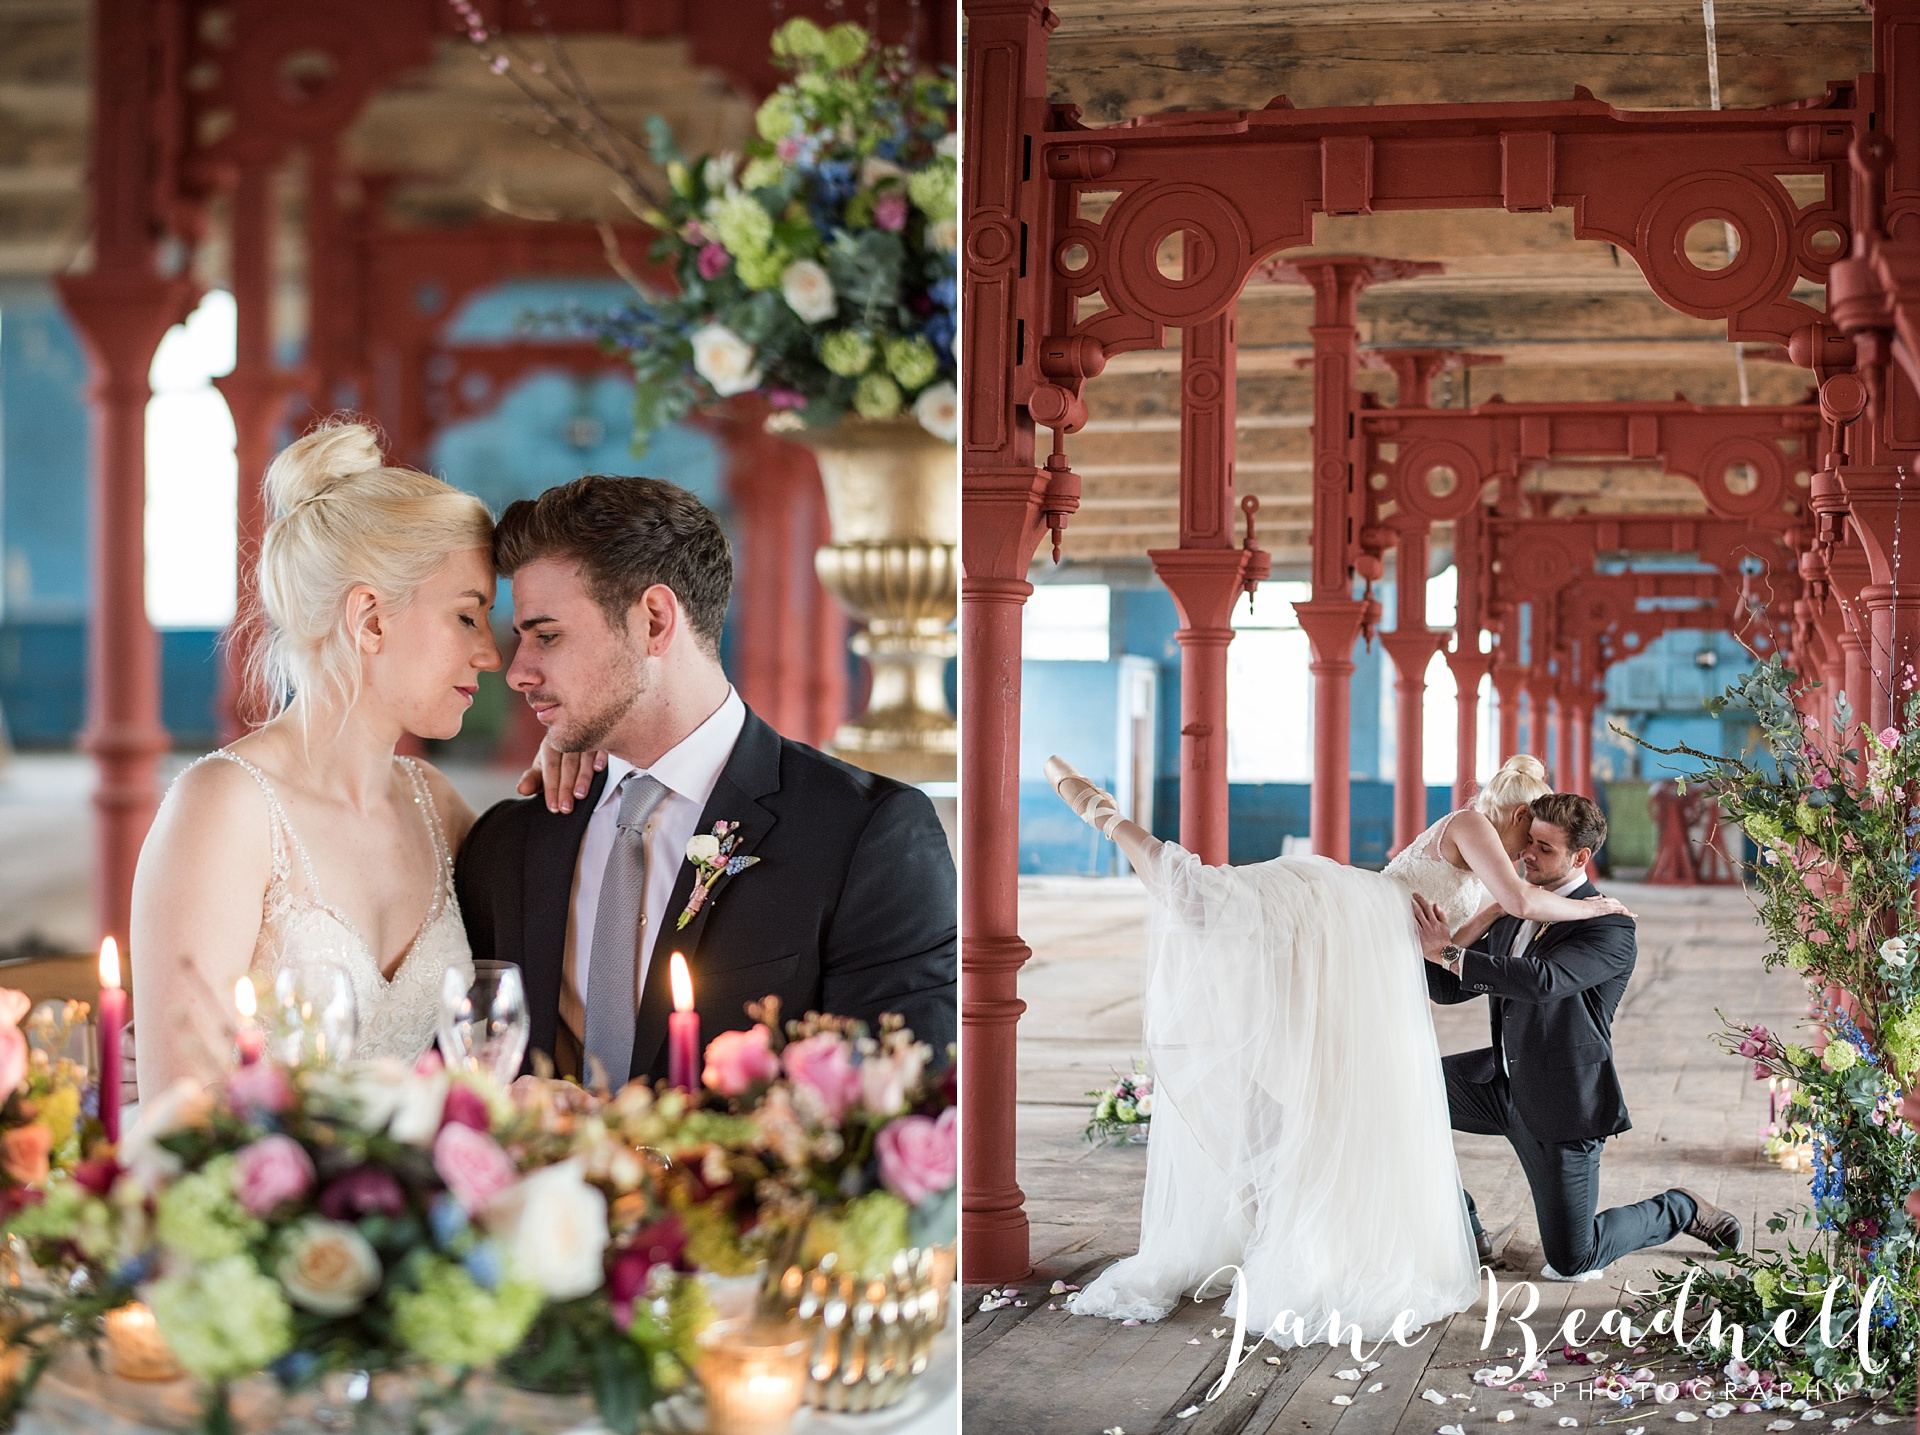 Ballet themed styled wedding shoot at Dalton Mills by Jane Beadnell Photography-0_0068